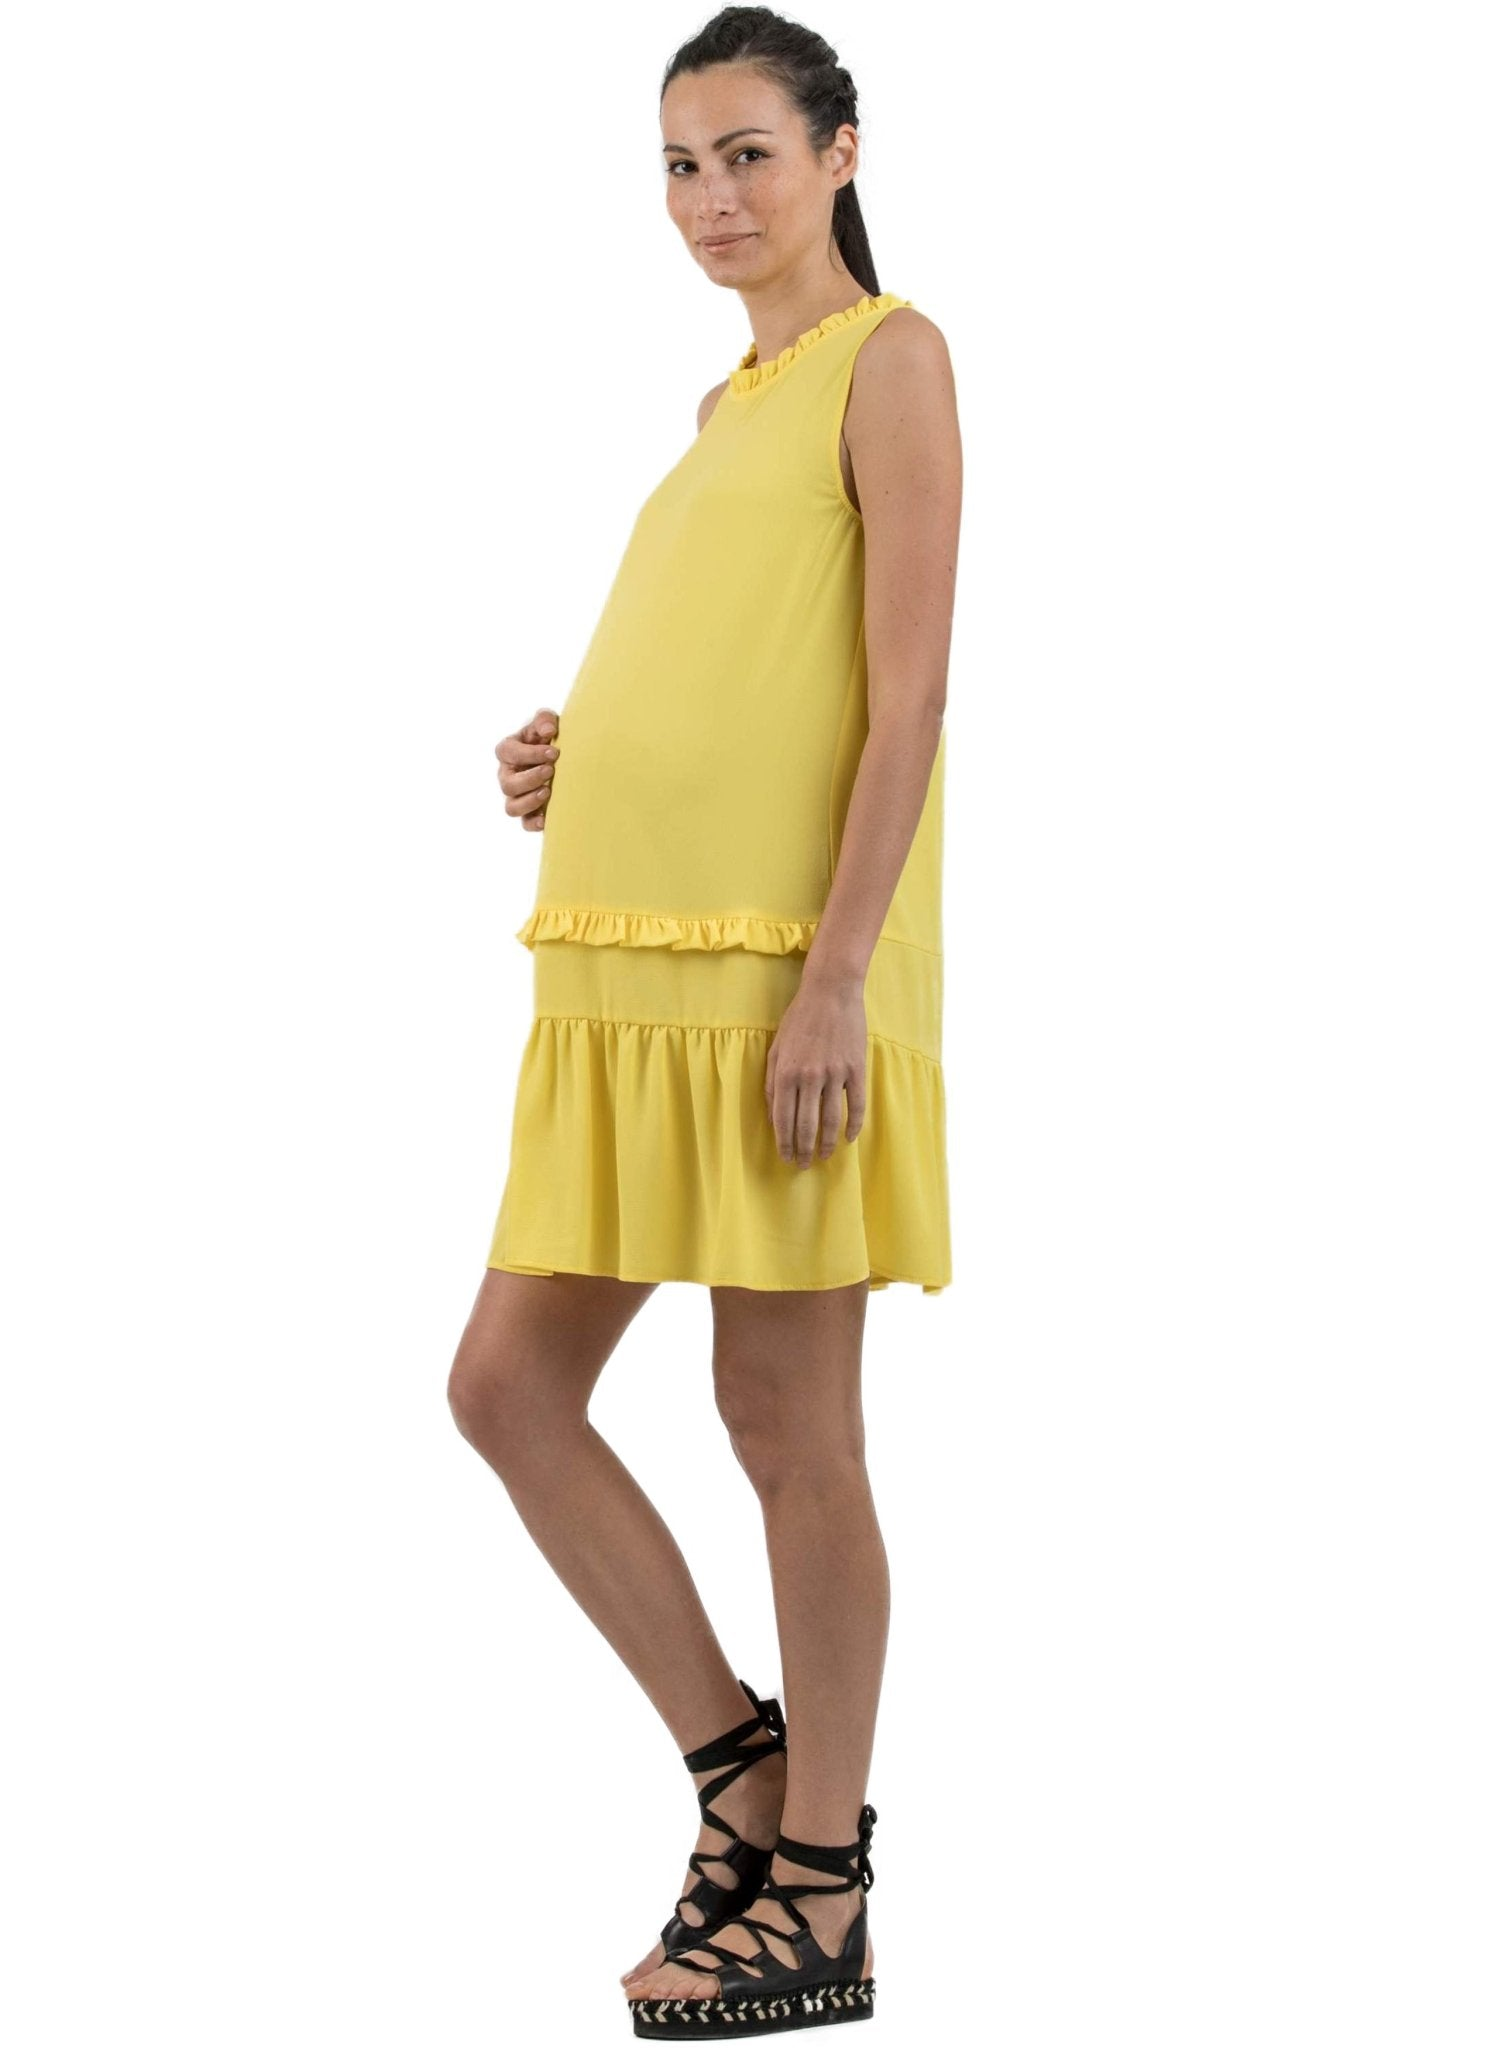 Ruffle Maternity Dress - Yellow - Mums and Bumps